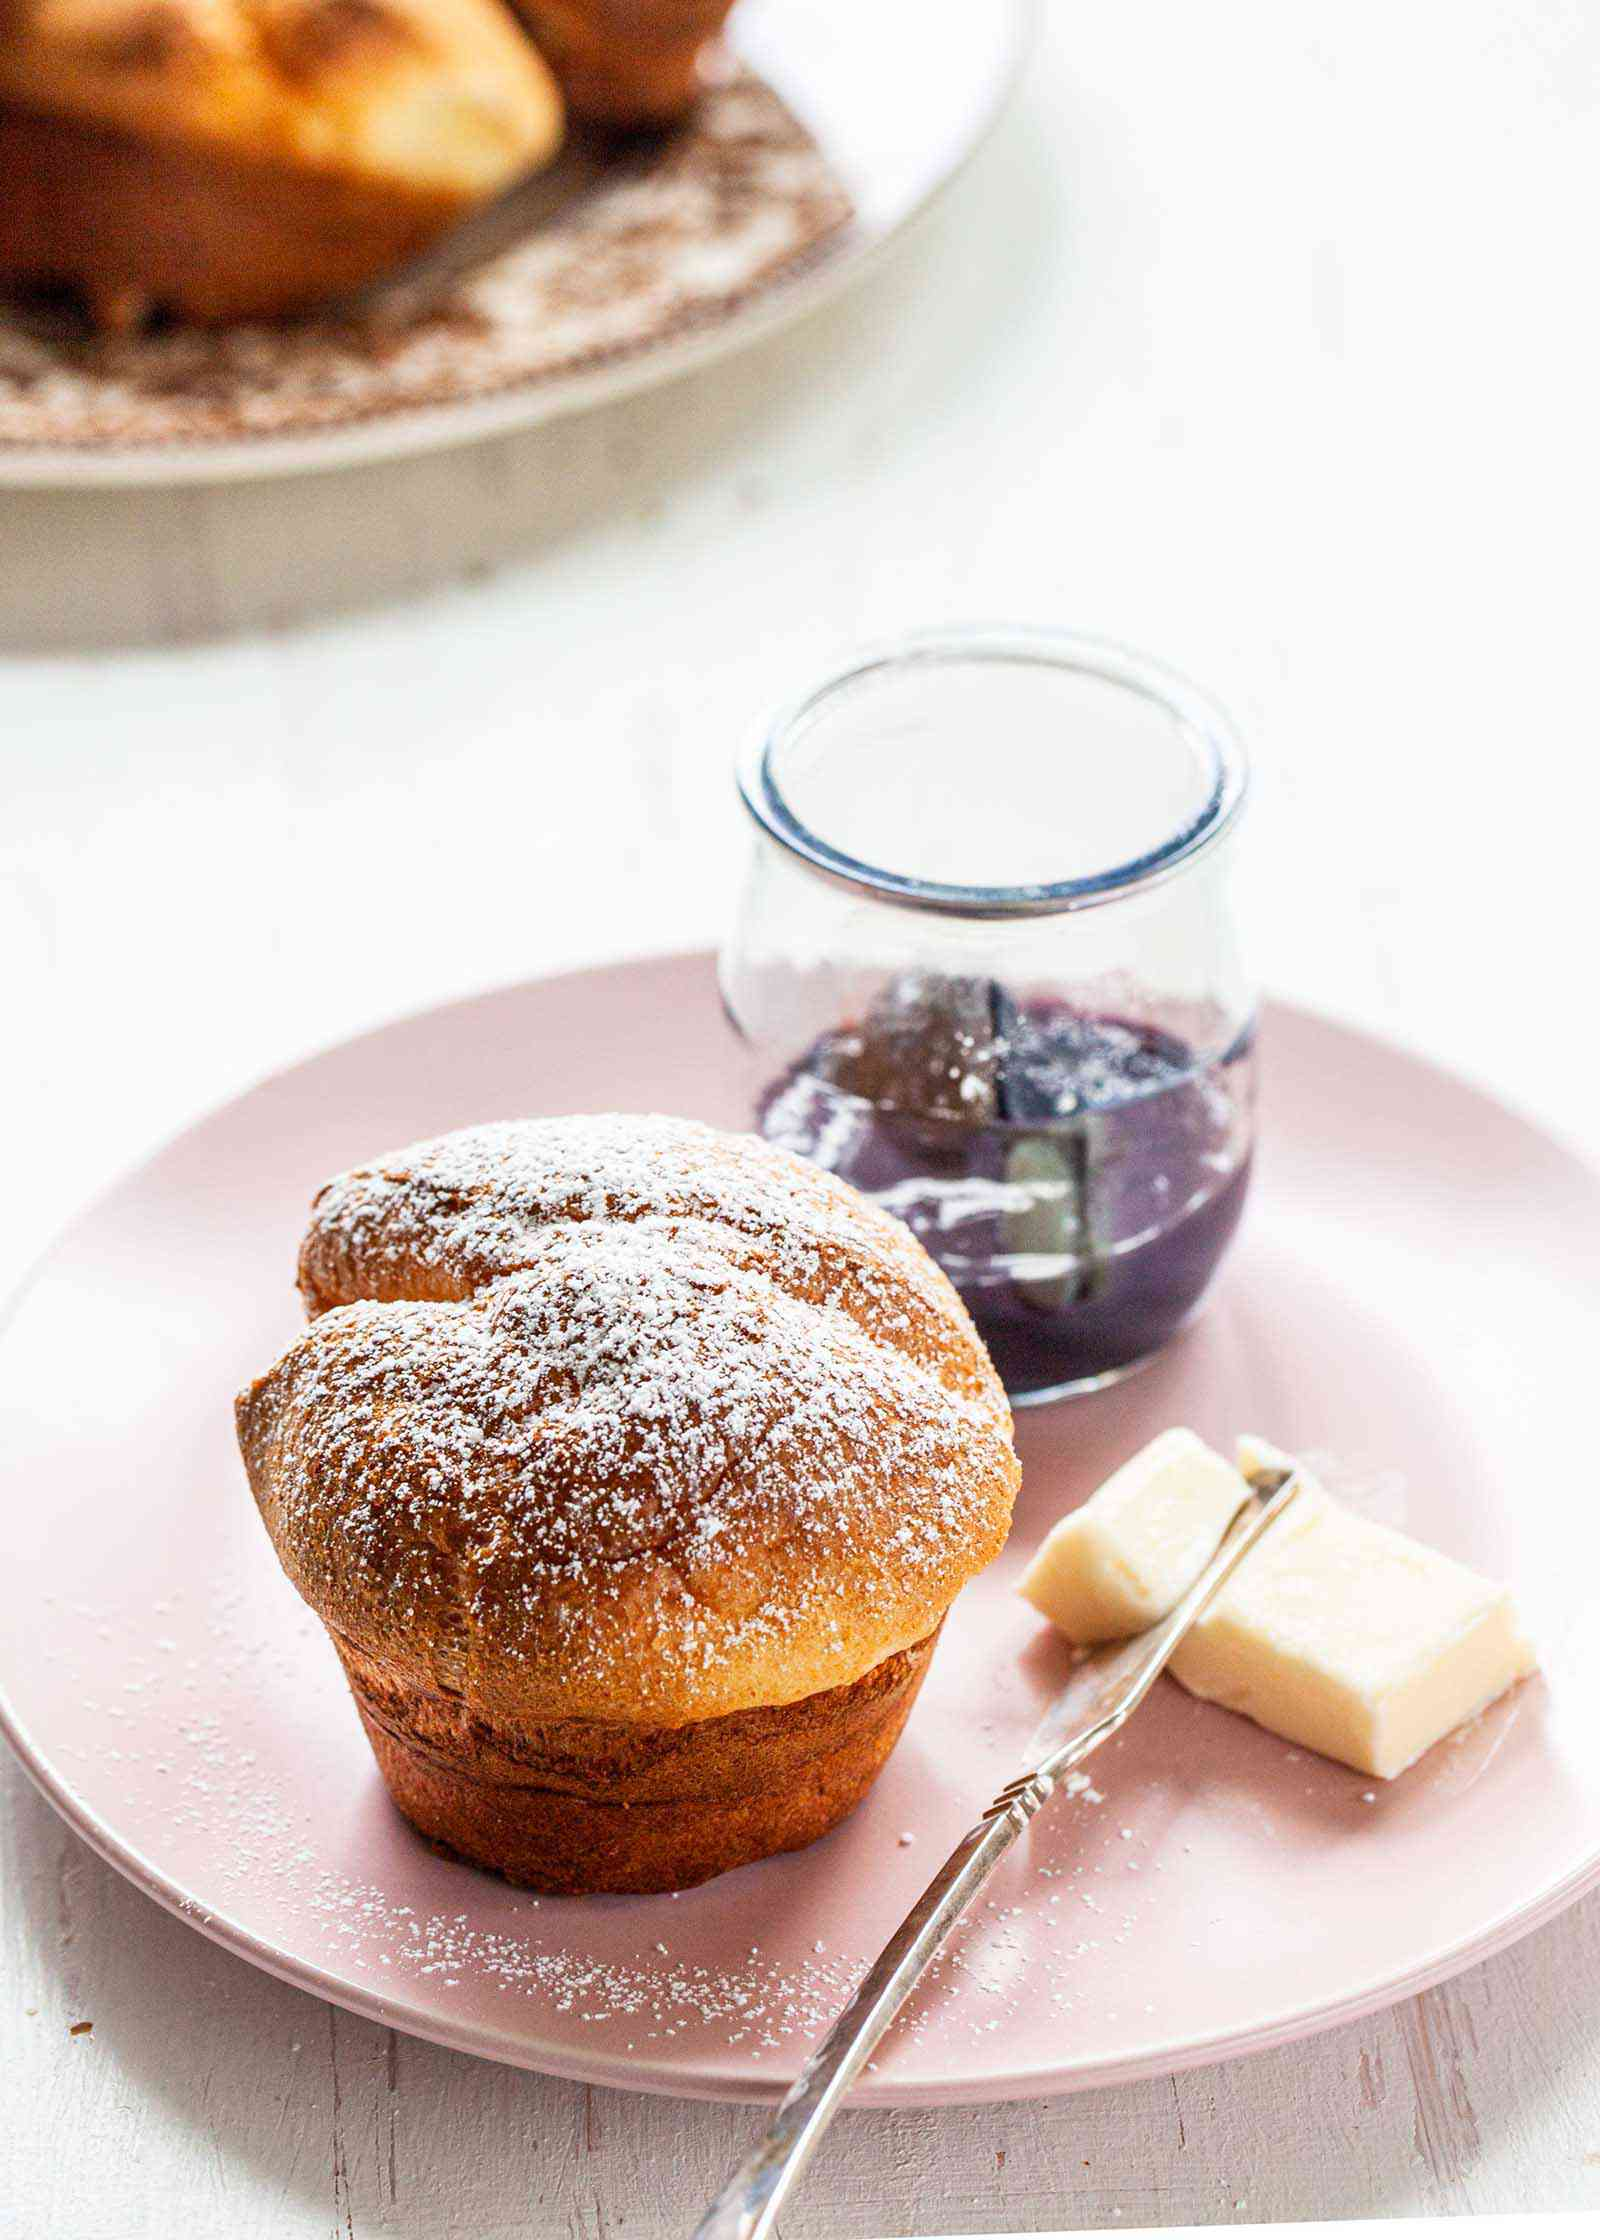 A popover on a plate with a pat of butter and jelly jar.